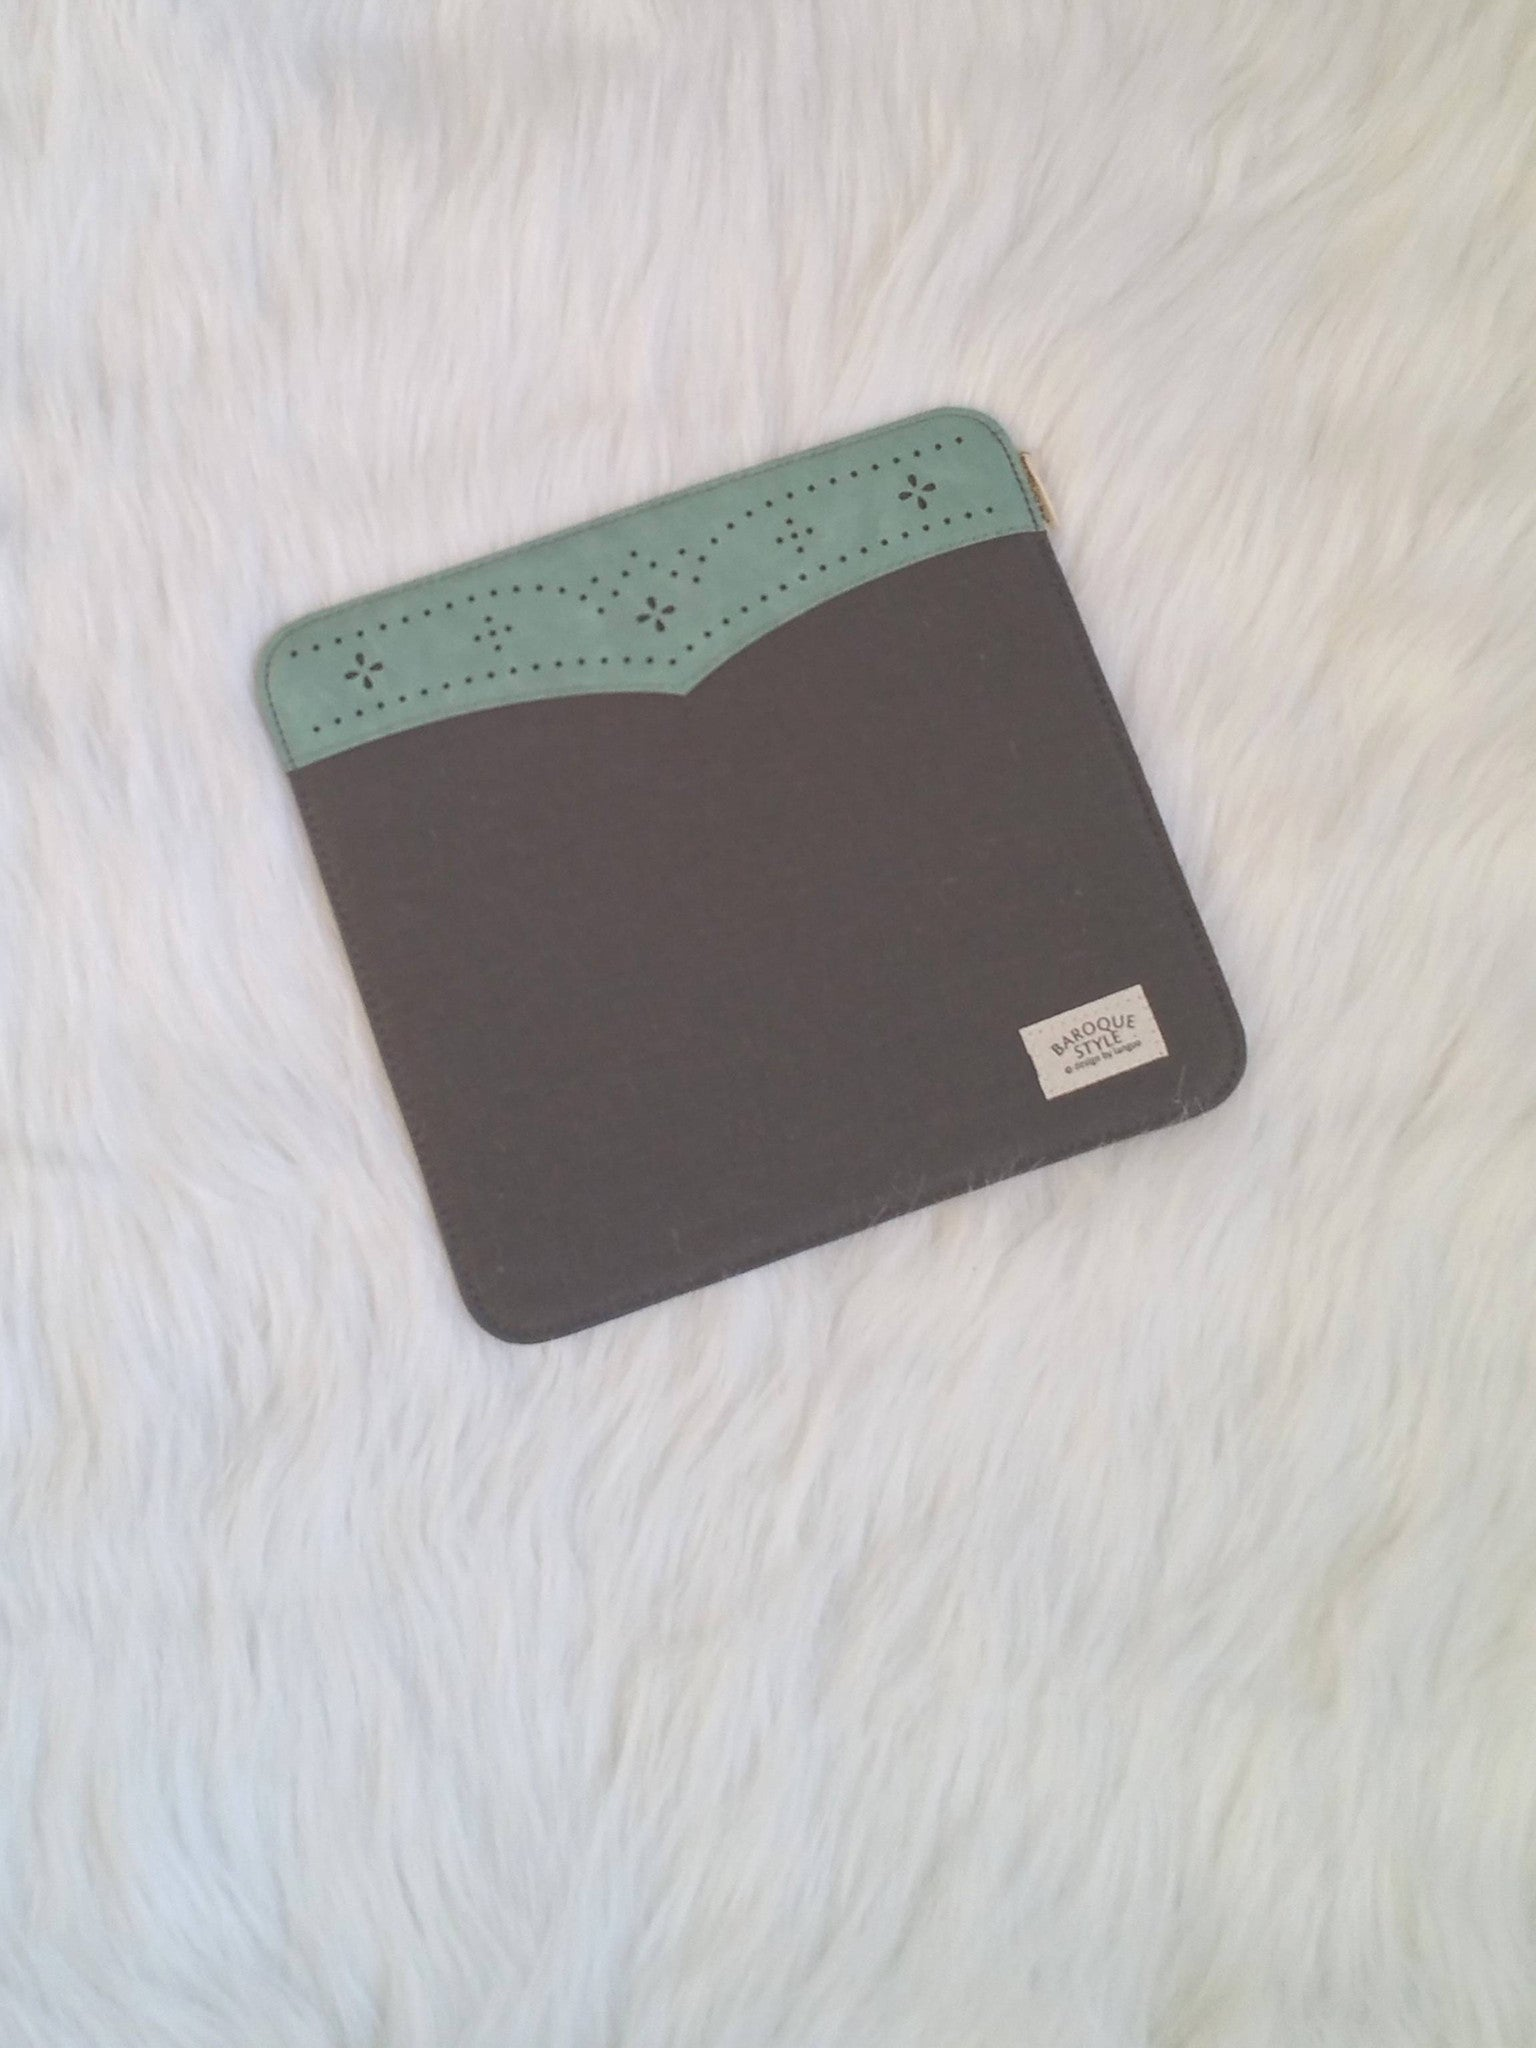 ... Gray Mouse Pad With Lace, Office Mouse Pads, Office Gifts, Co Worker ...